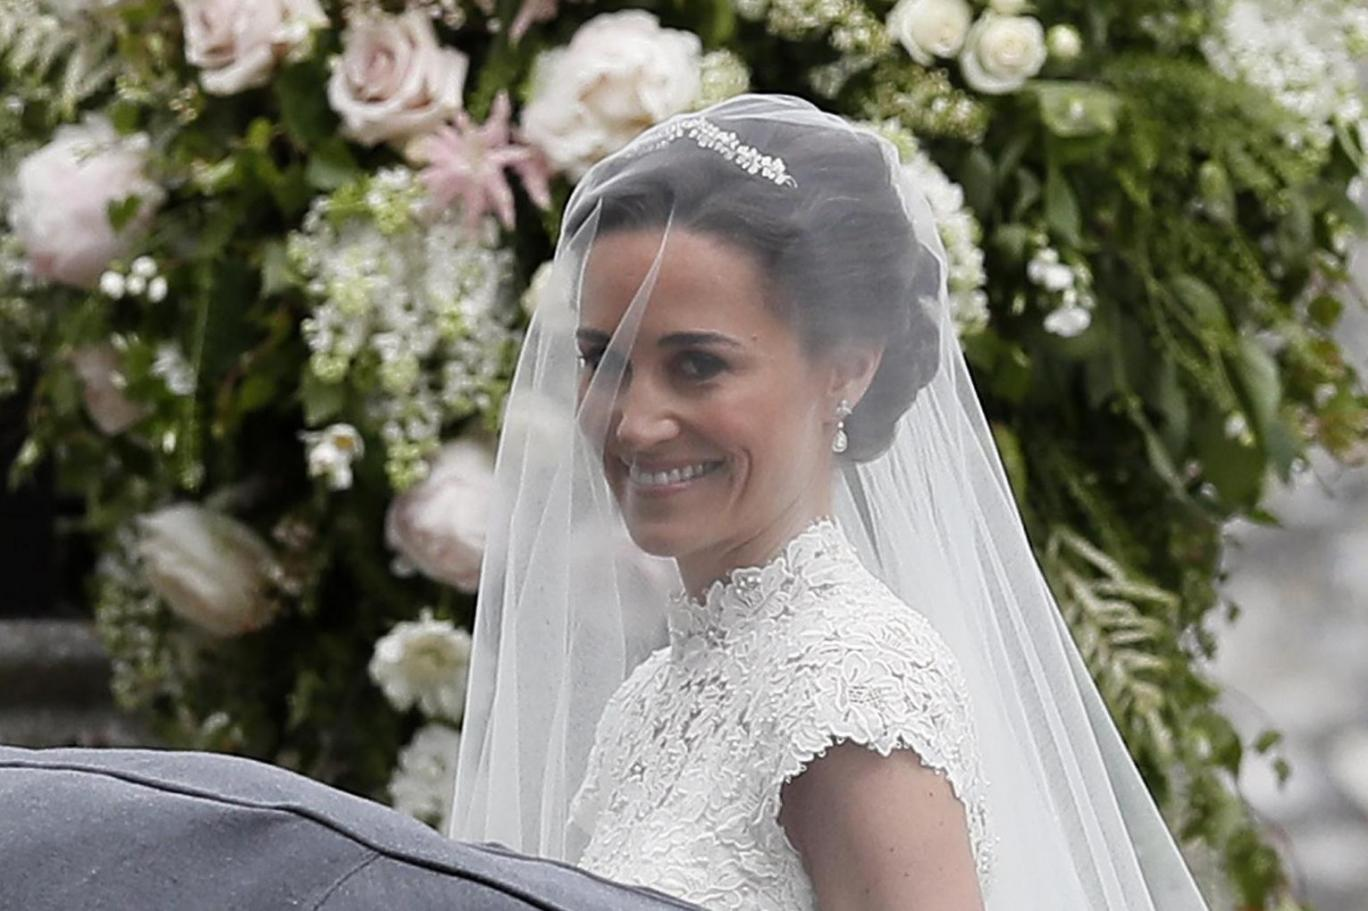 Stunning Bride Pippa And Groom James Matthews Arrive At